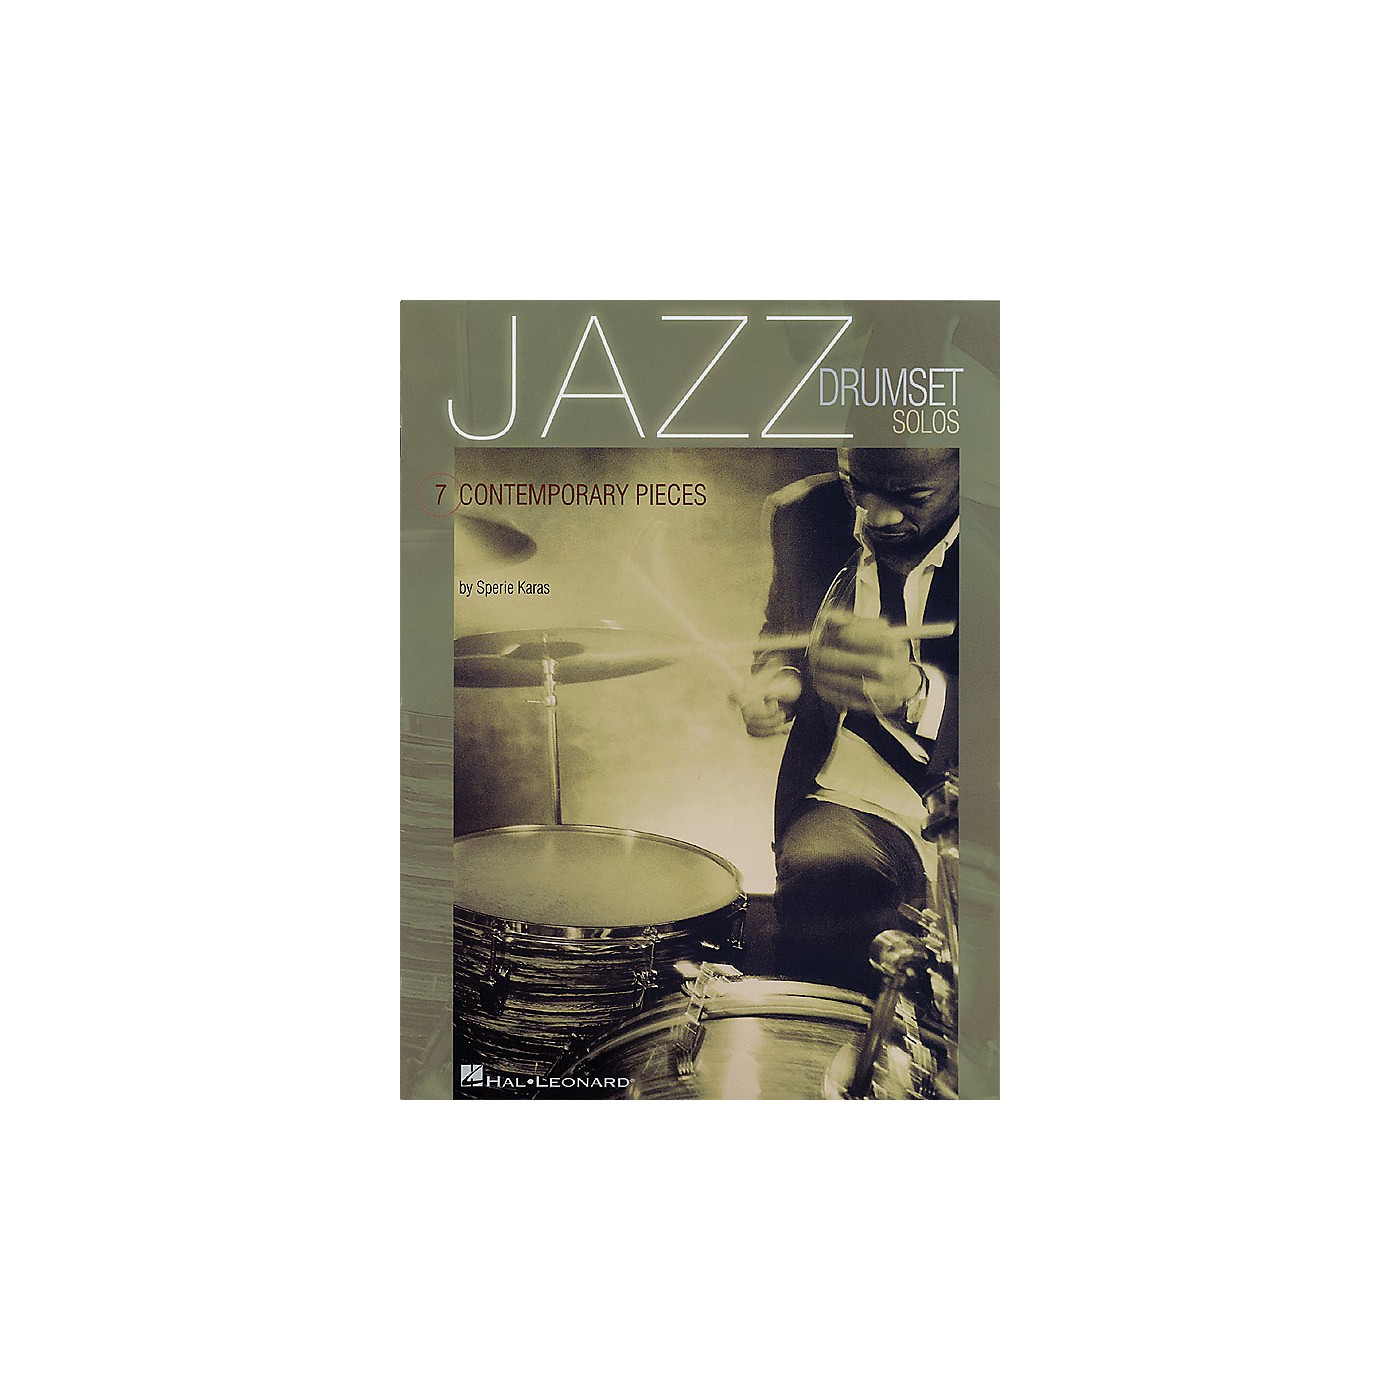 Hal Leonard Jazz Drumset Solos (Seven Contemporary Pieces) Percussion Series Softcover Written by Sperie Karas thumbnail